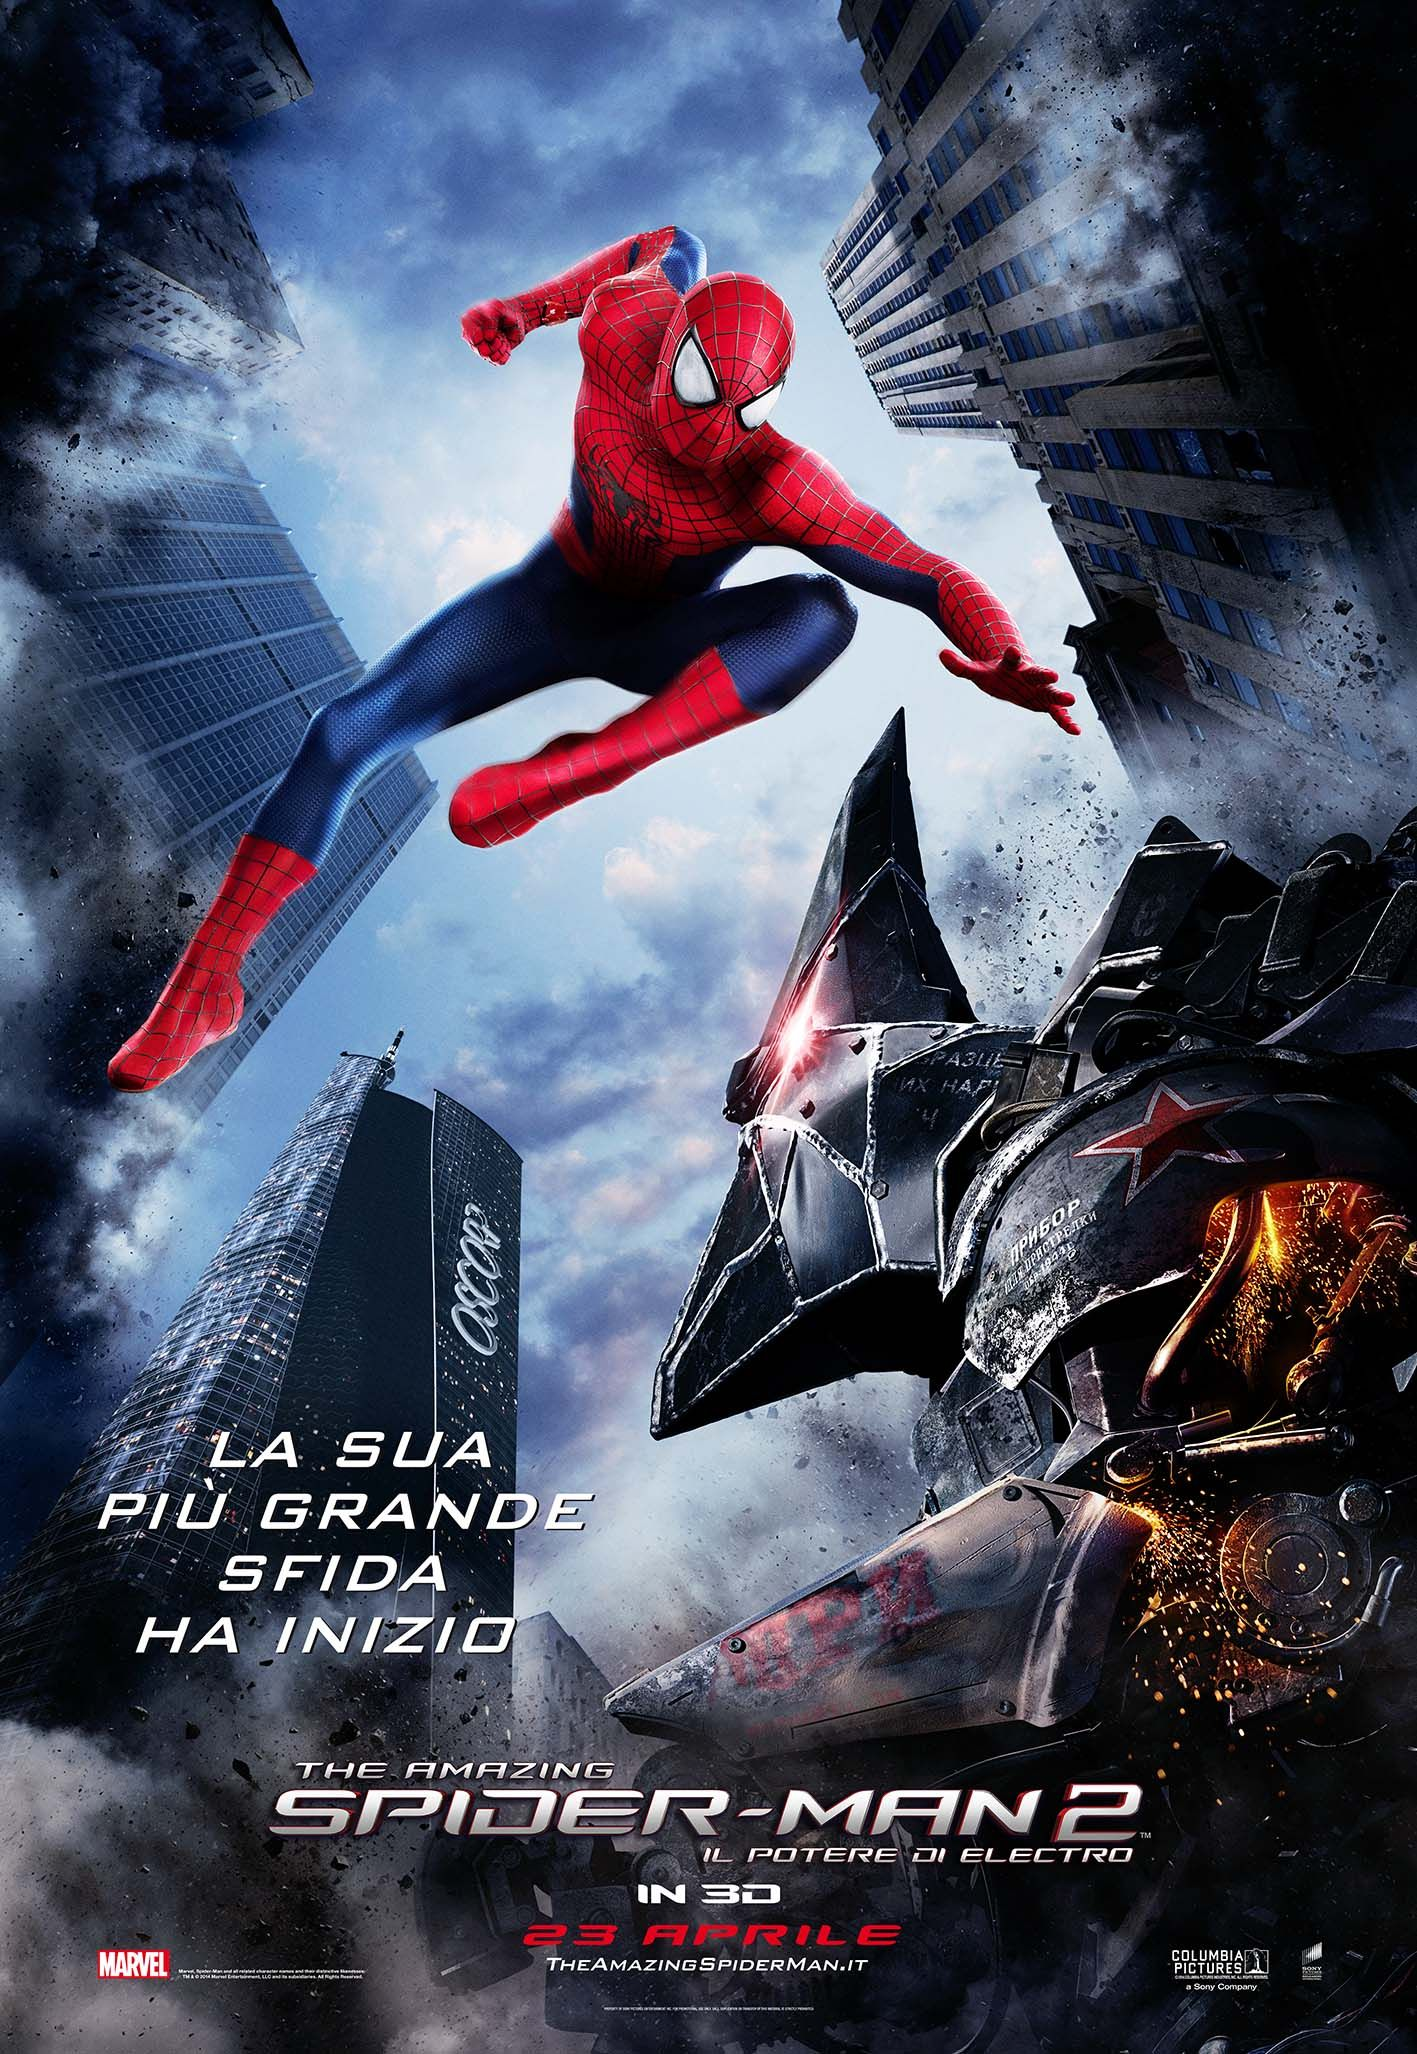 the amazing spider-man 2: il potere di electro (23/04) | opening